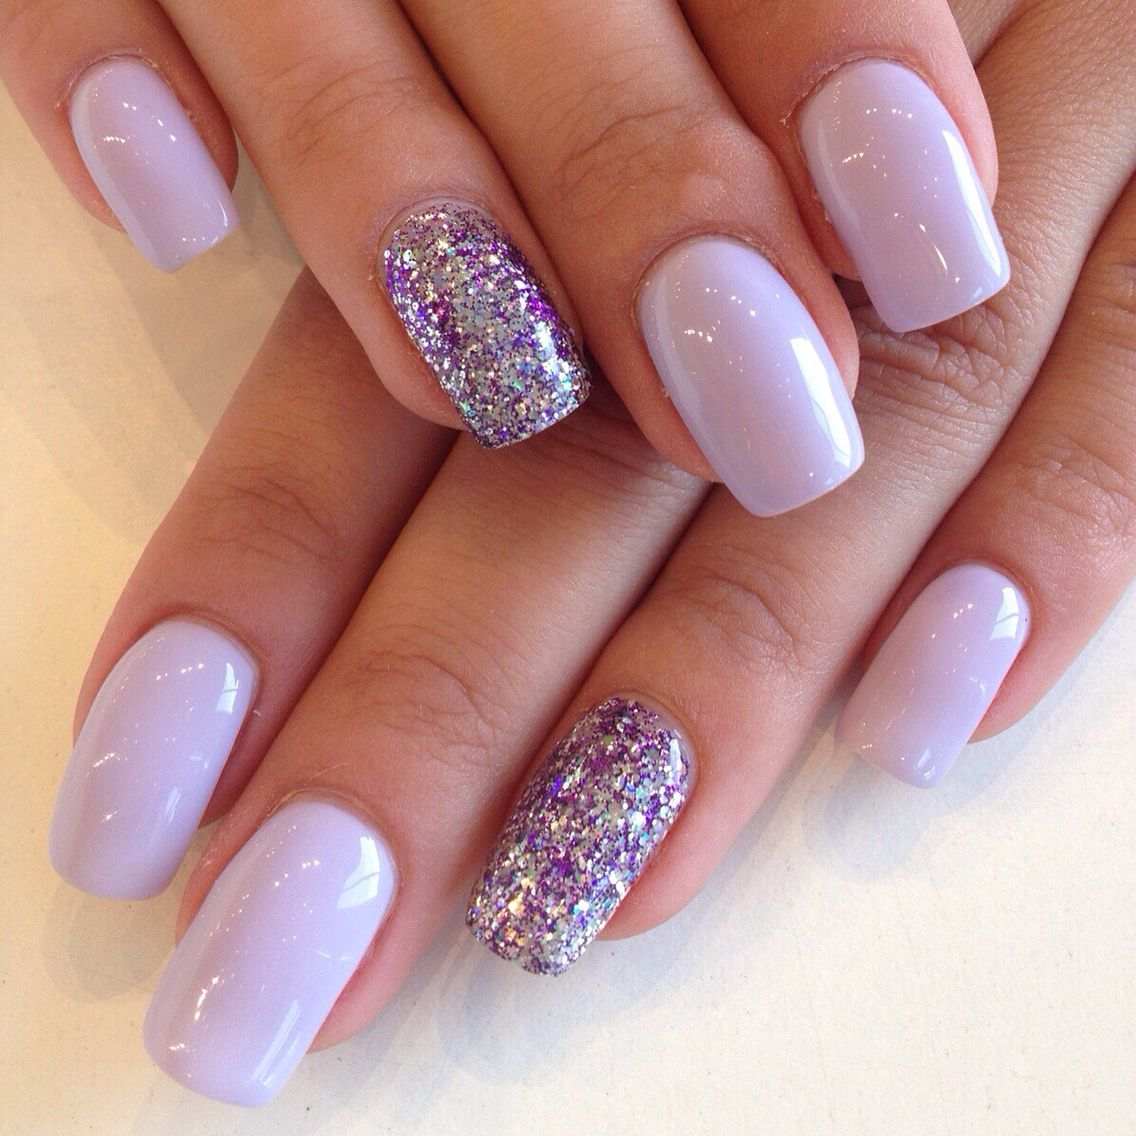 Lavender Nails!!! Lavender Purple Glitter - Lavender Nails!!! Lavender Purple Glitter Paigeeee Pinterest